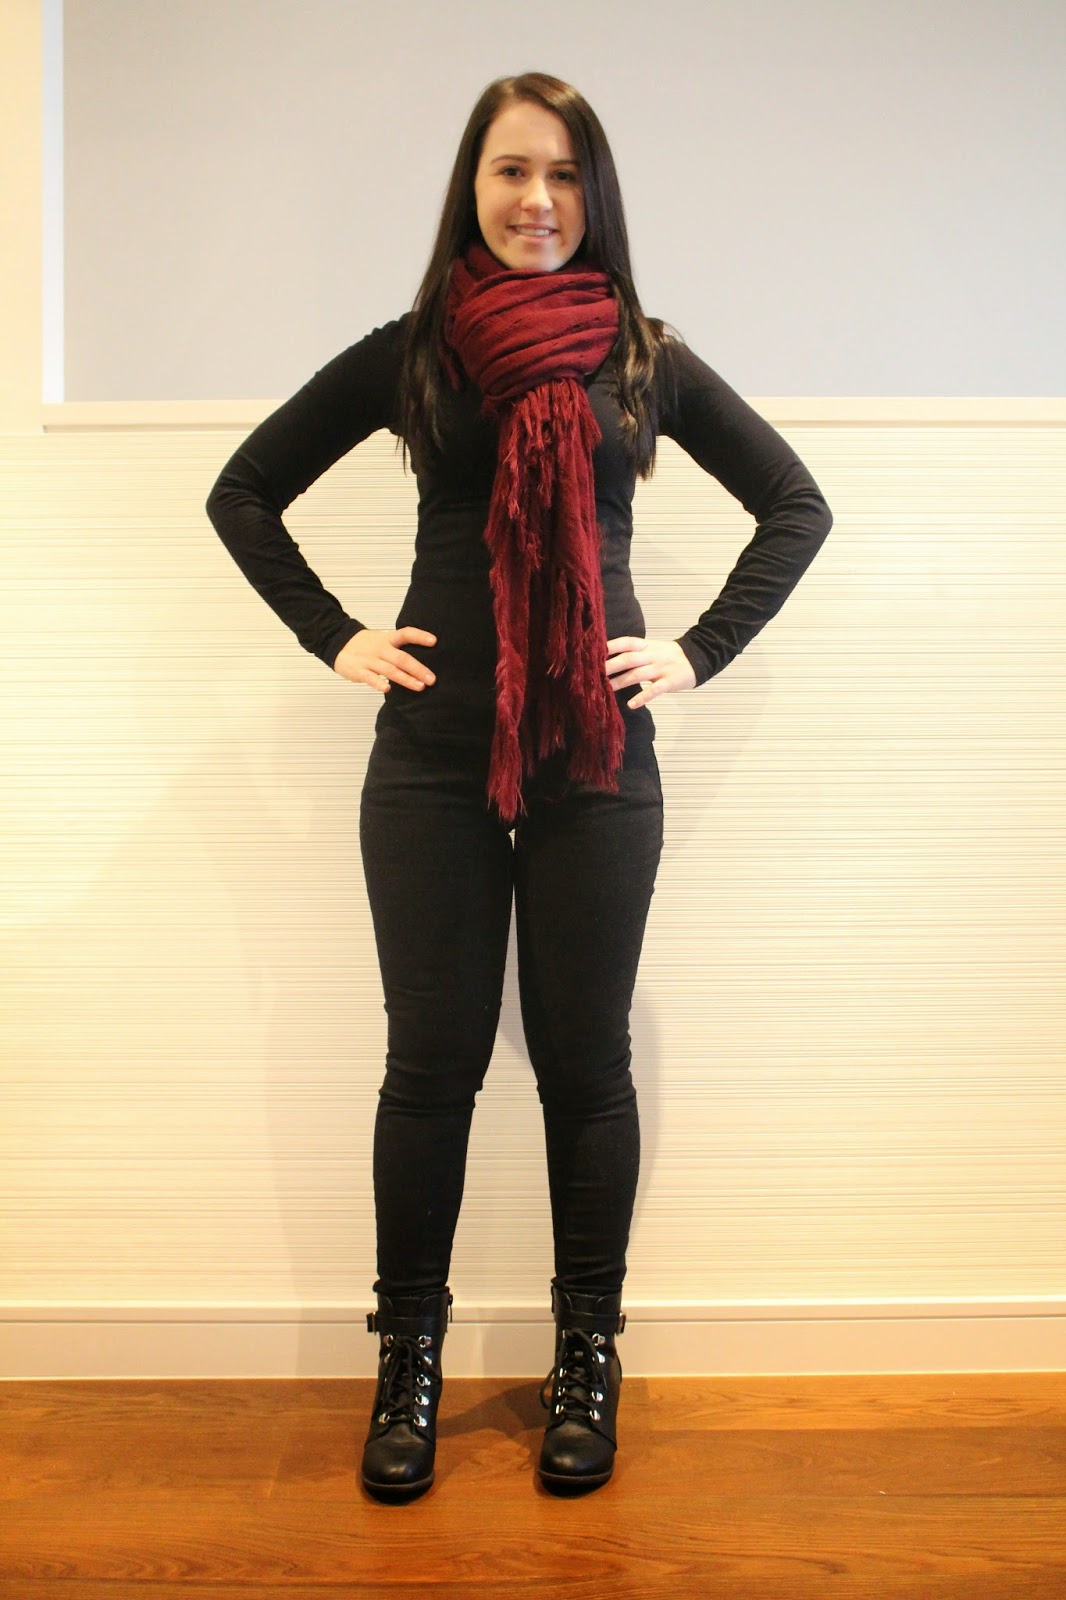 Black jeans, black long sleeved top, khaki winter jacket, black biker booties, maroon scarf, winter outfit, casual winter outfit, everyday outfit, jeans and booties, petite girl outfit